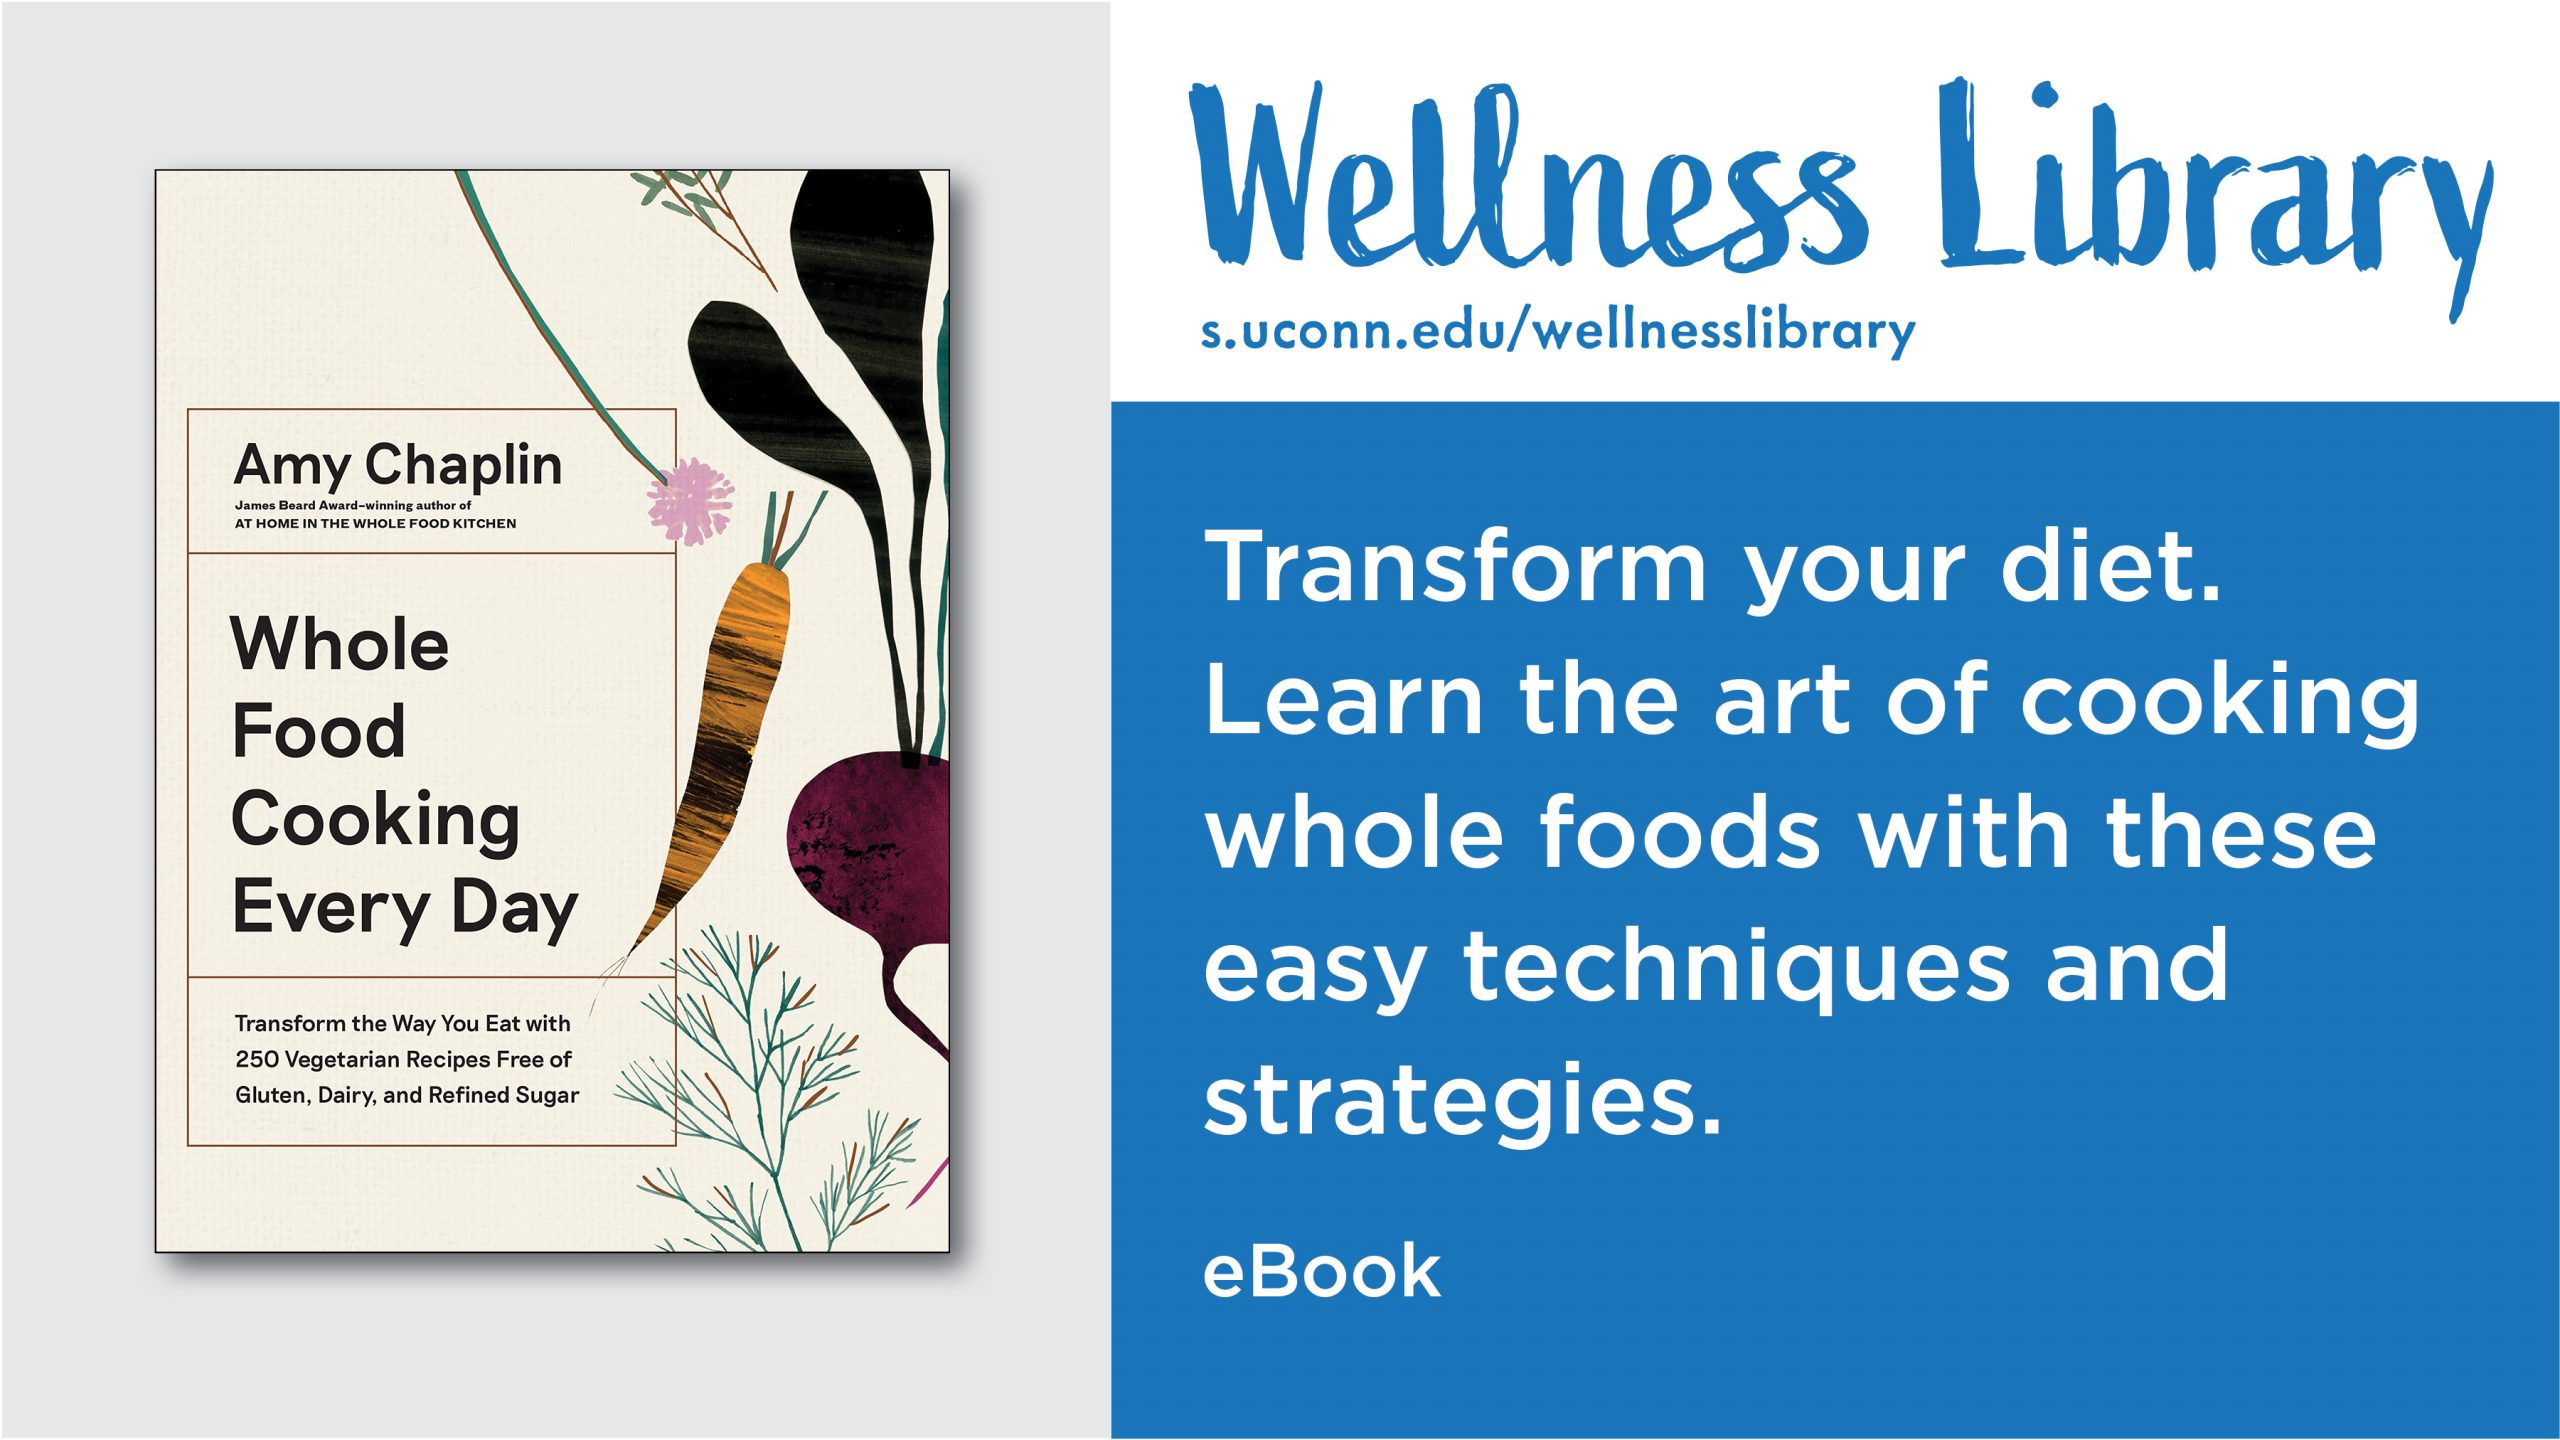 Wellness Library Whole Food Cooking Every Day by Amy Chaplin Transform your diet. Learn the art of cooking whole foods with these easy techniques and strategies. eBook s.uconn.edu/wellnesslibrary